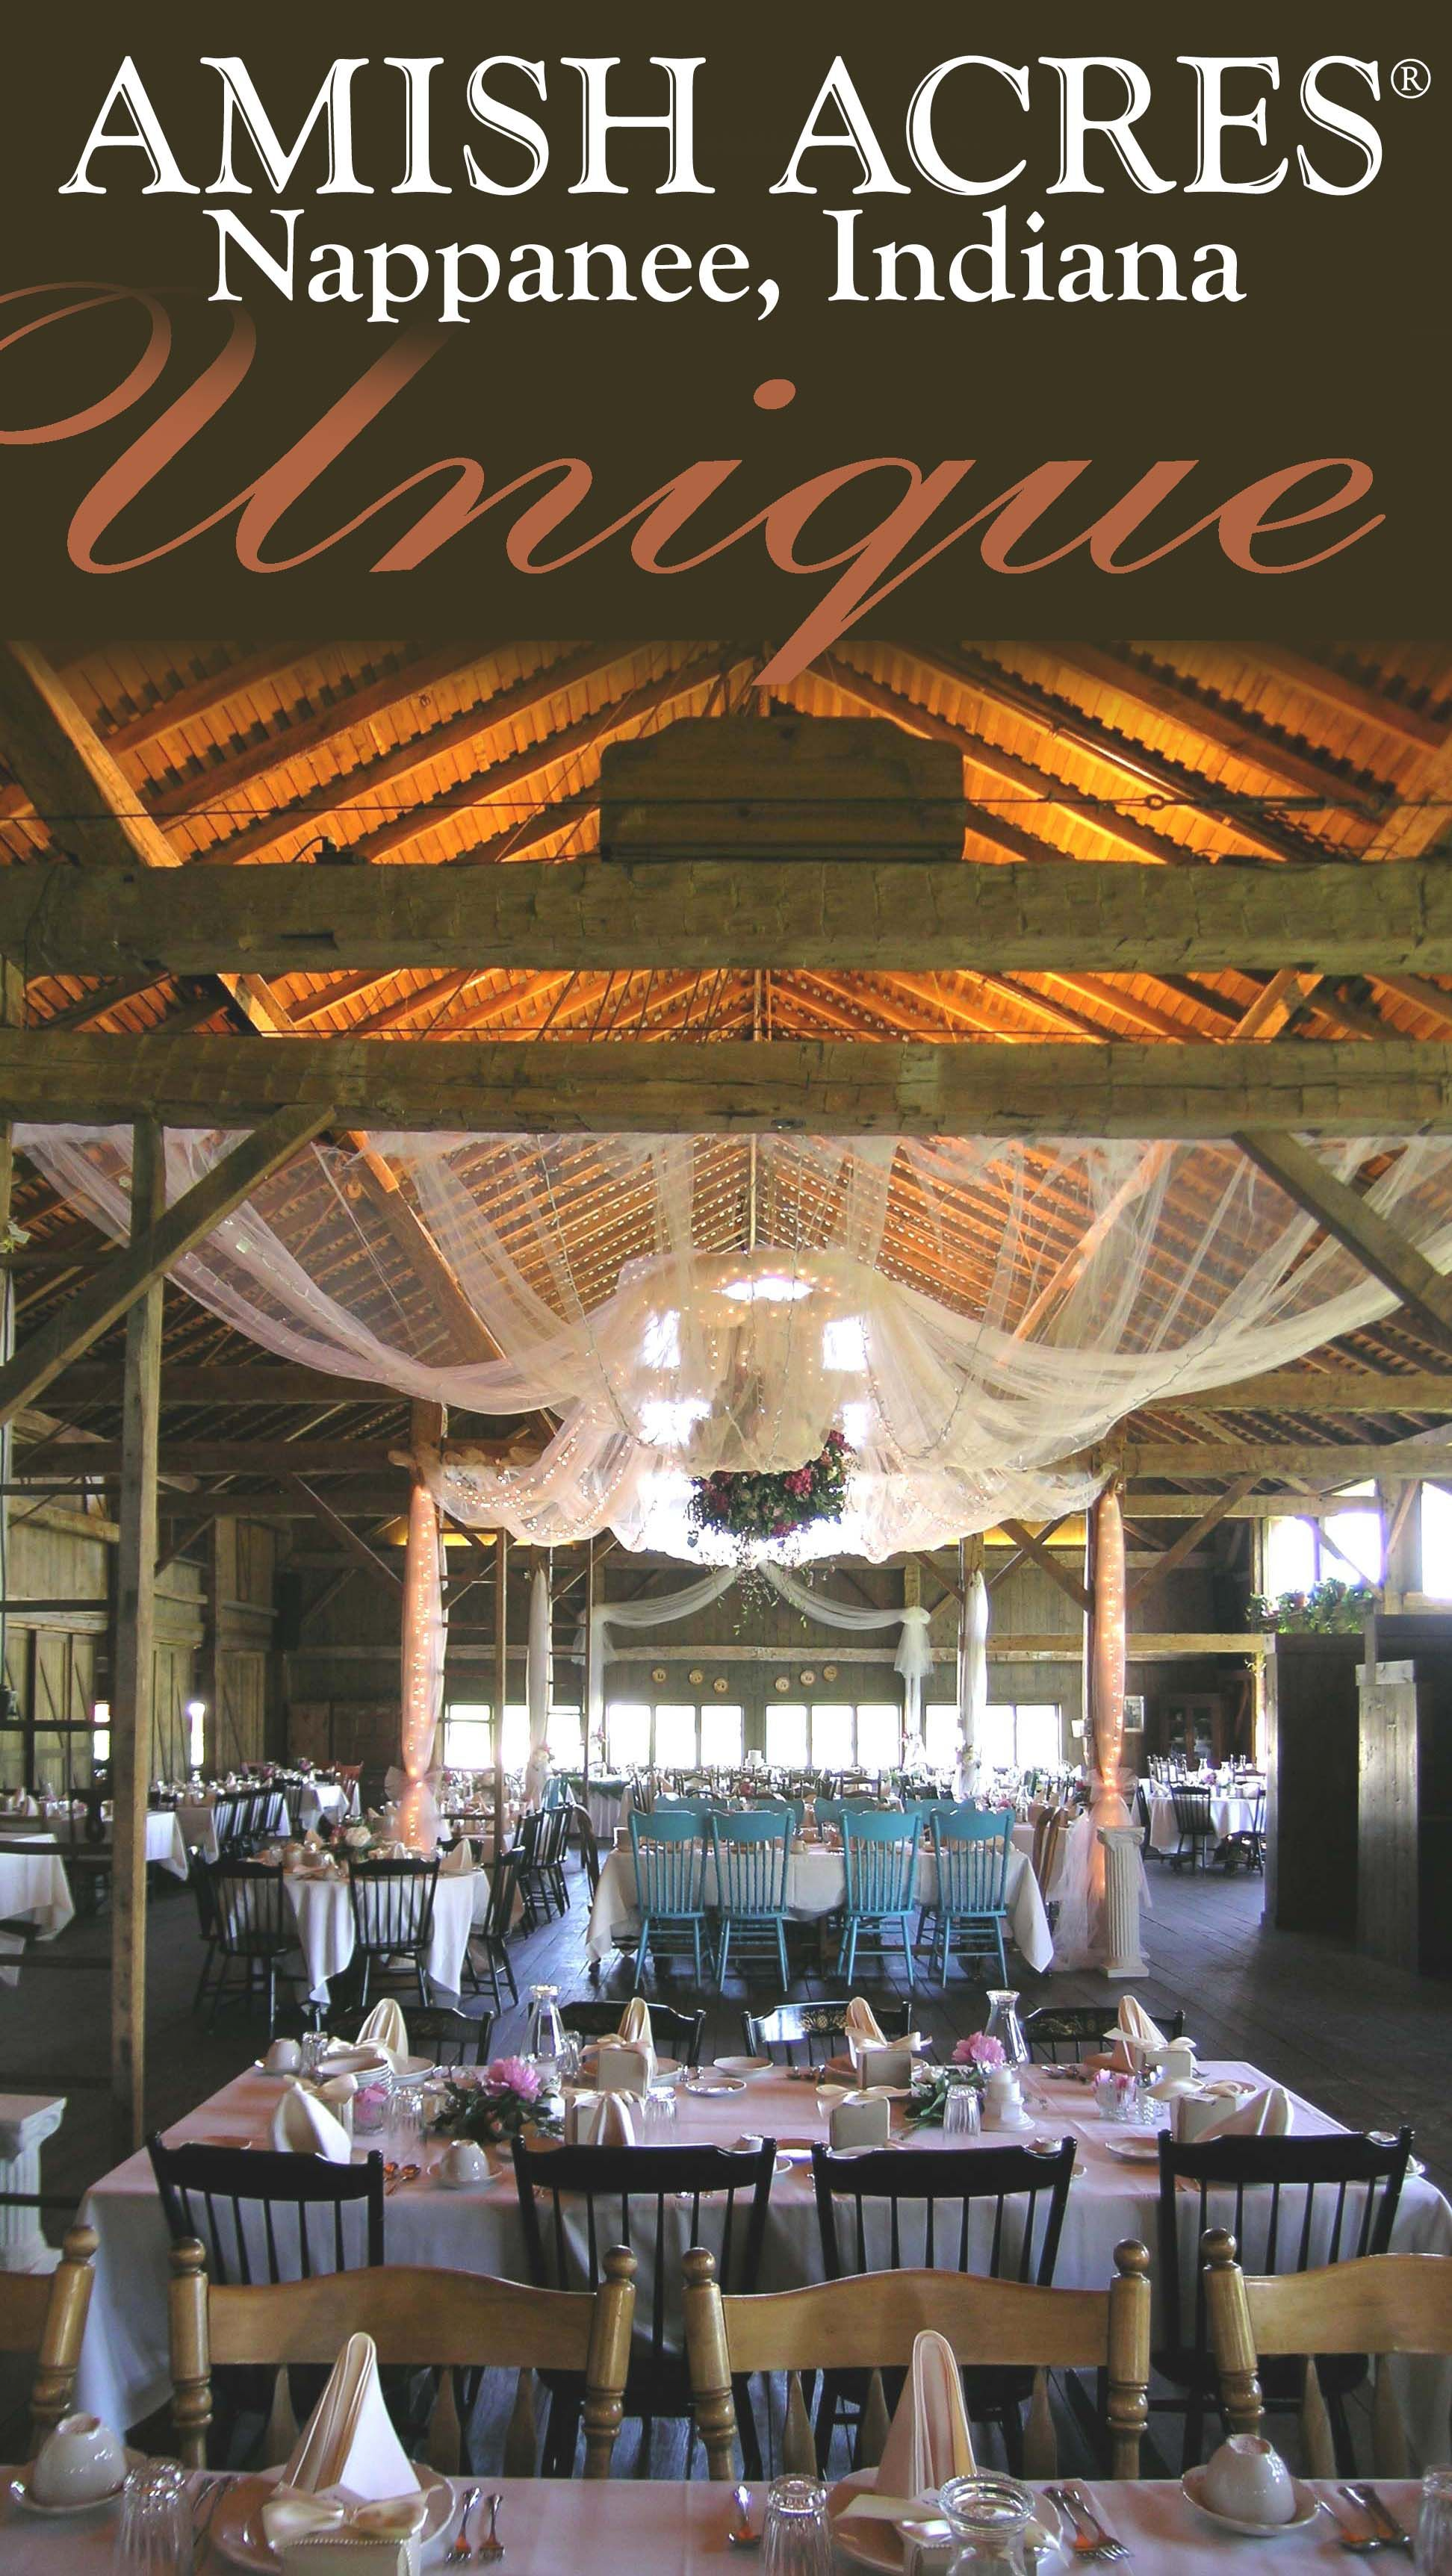 Find This Pin And More On Barn Weddings At Amish Acres